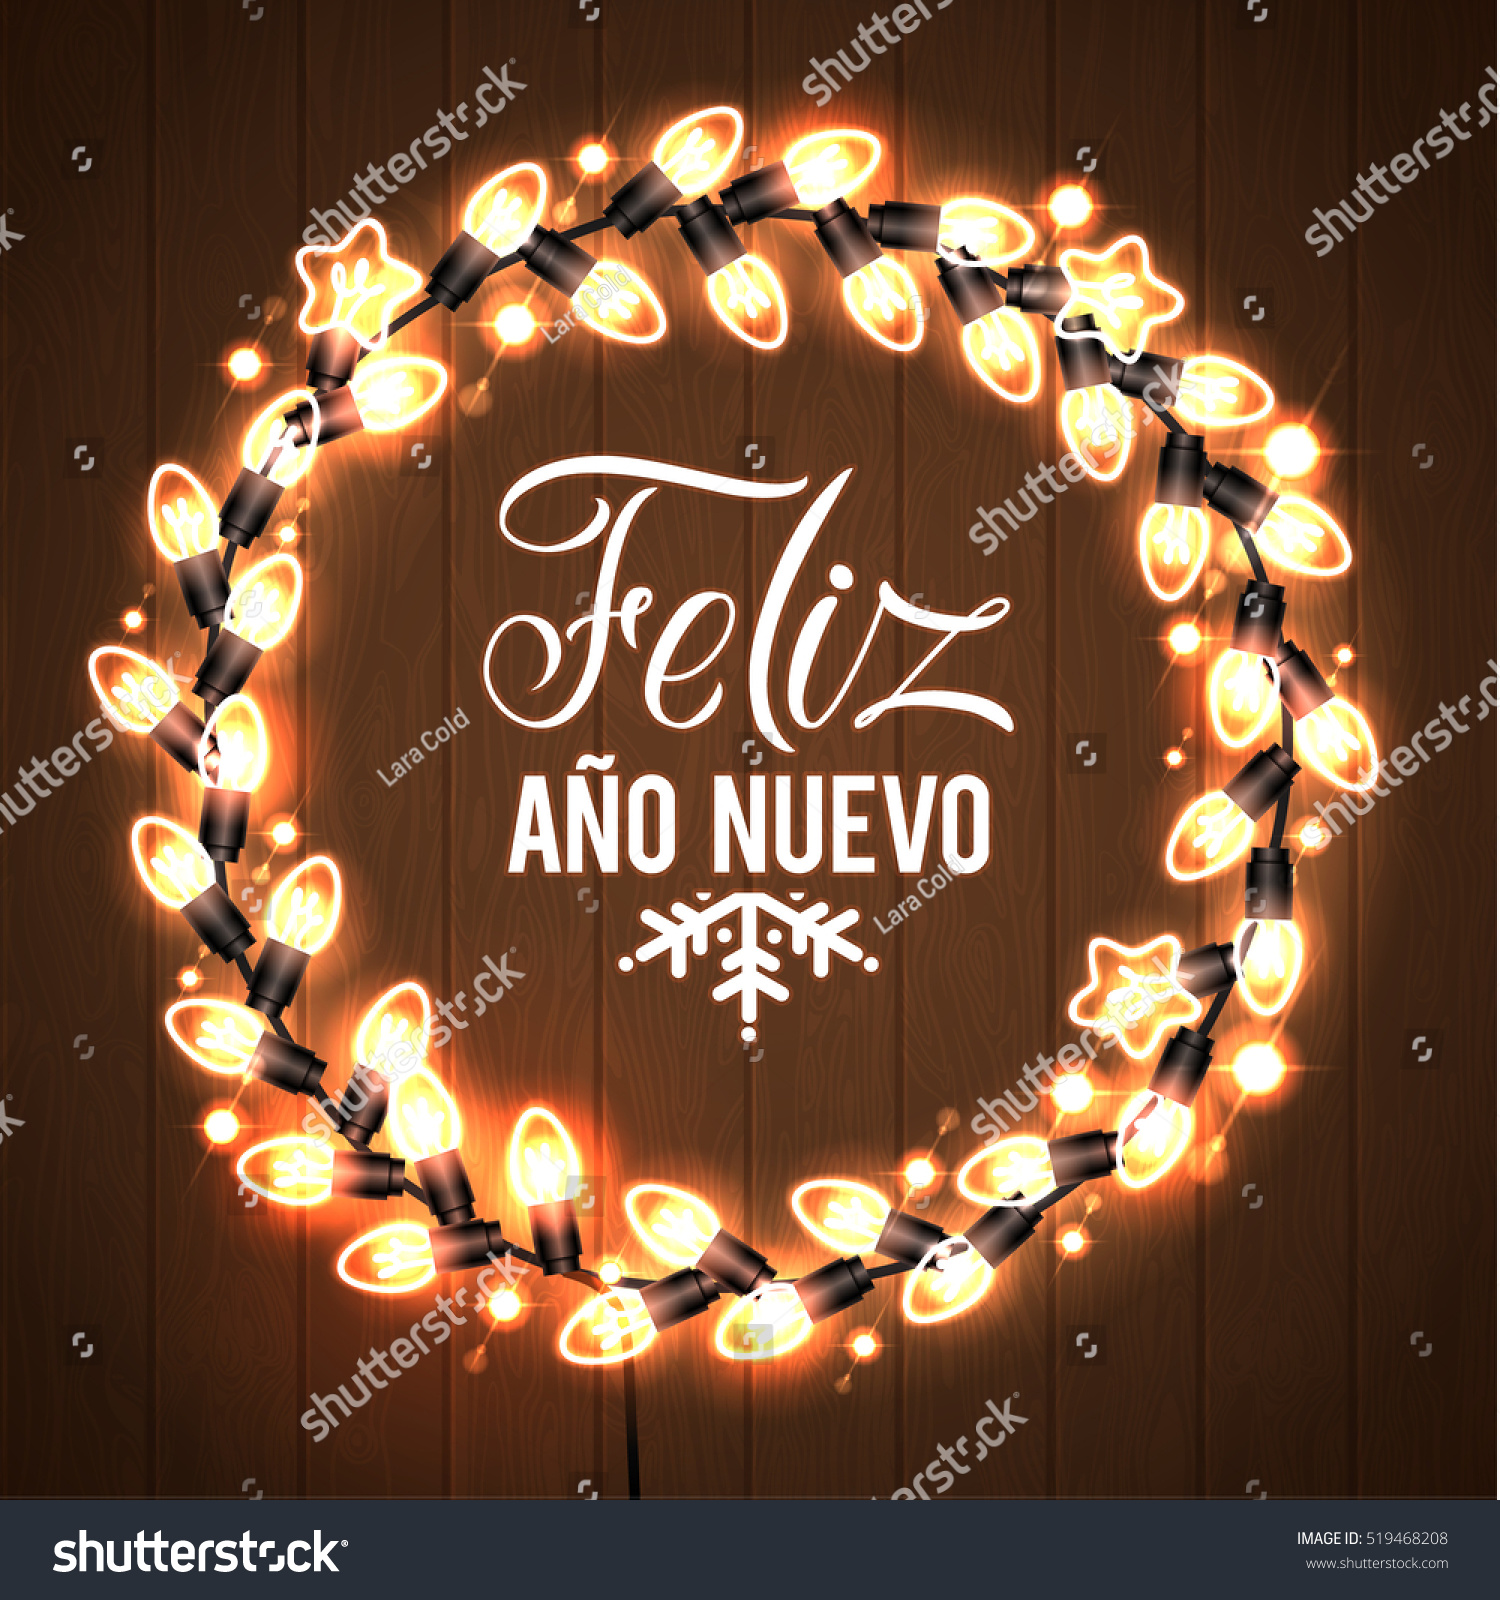 Happy New Year Spanish Language Poster Stock Vector